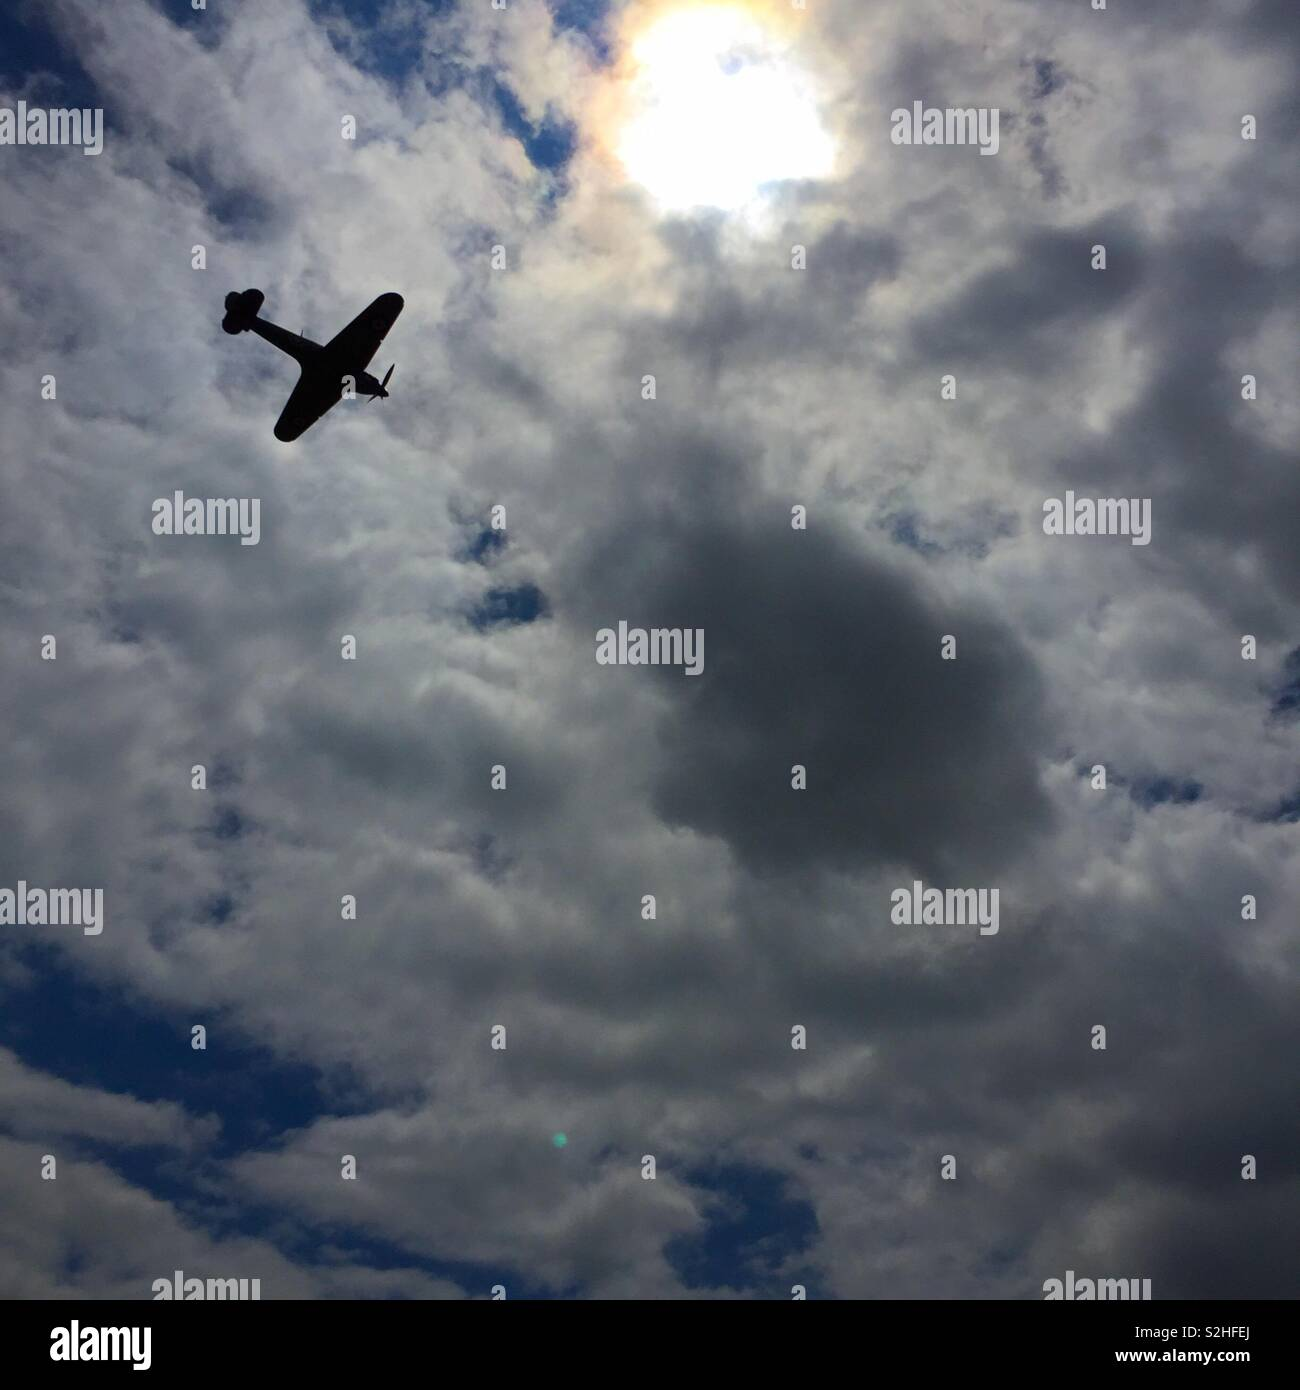 Hurricane fighter bomber silhouetted against a cloudy summer sky - Stock Image